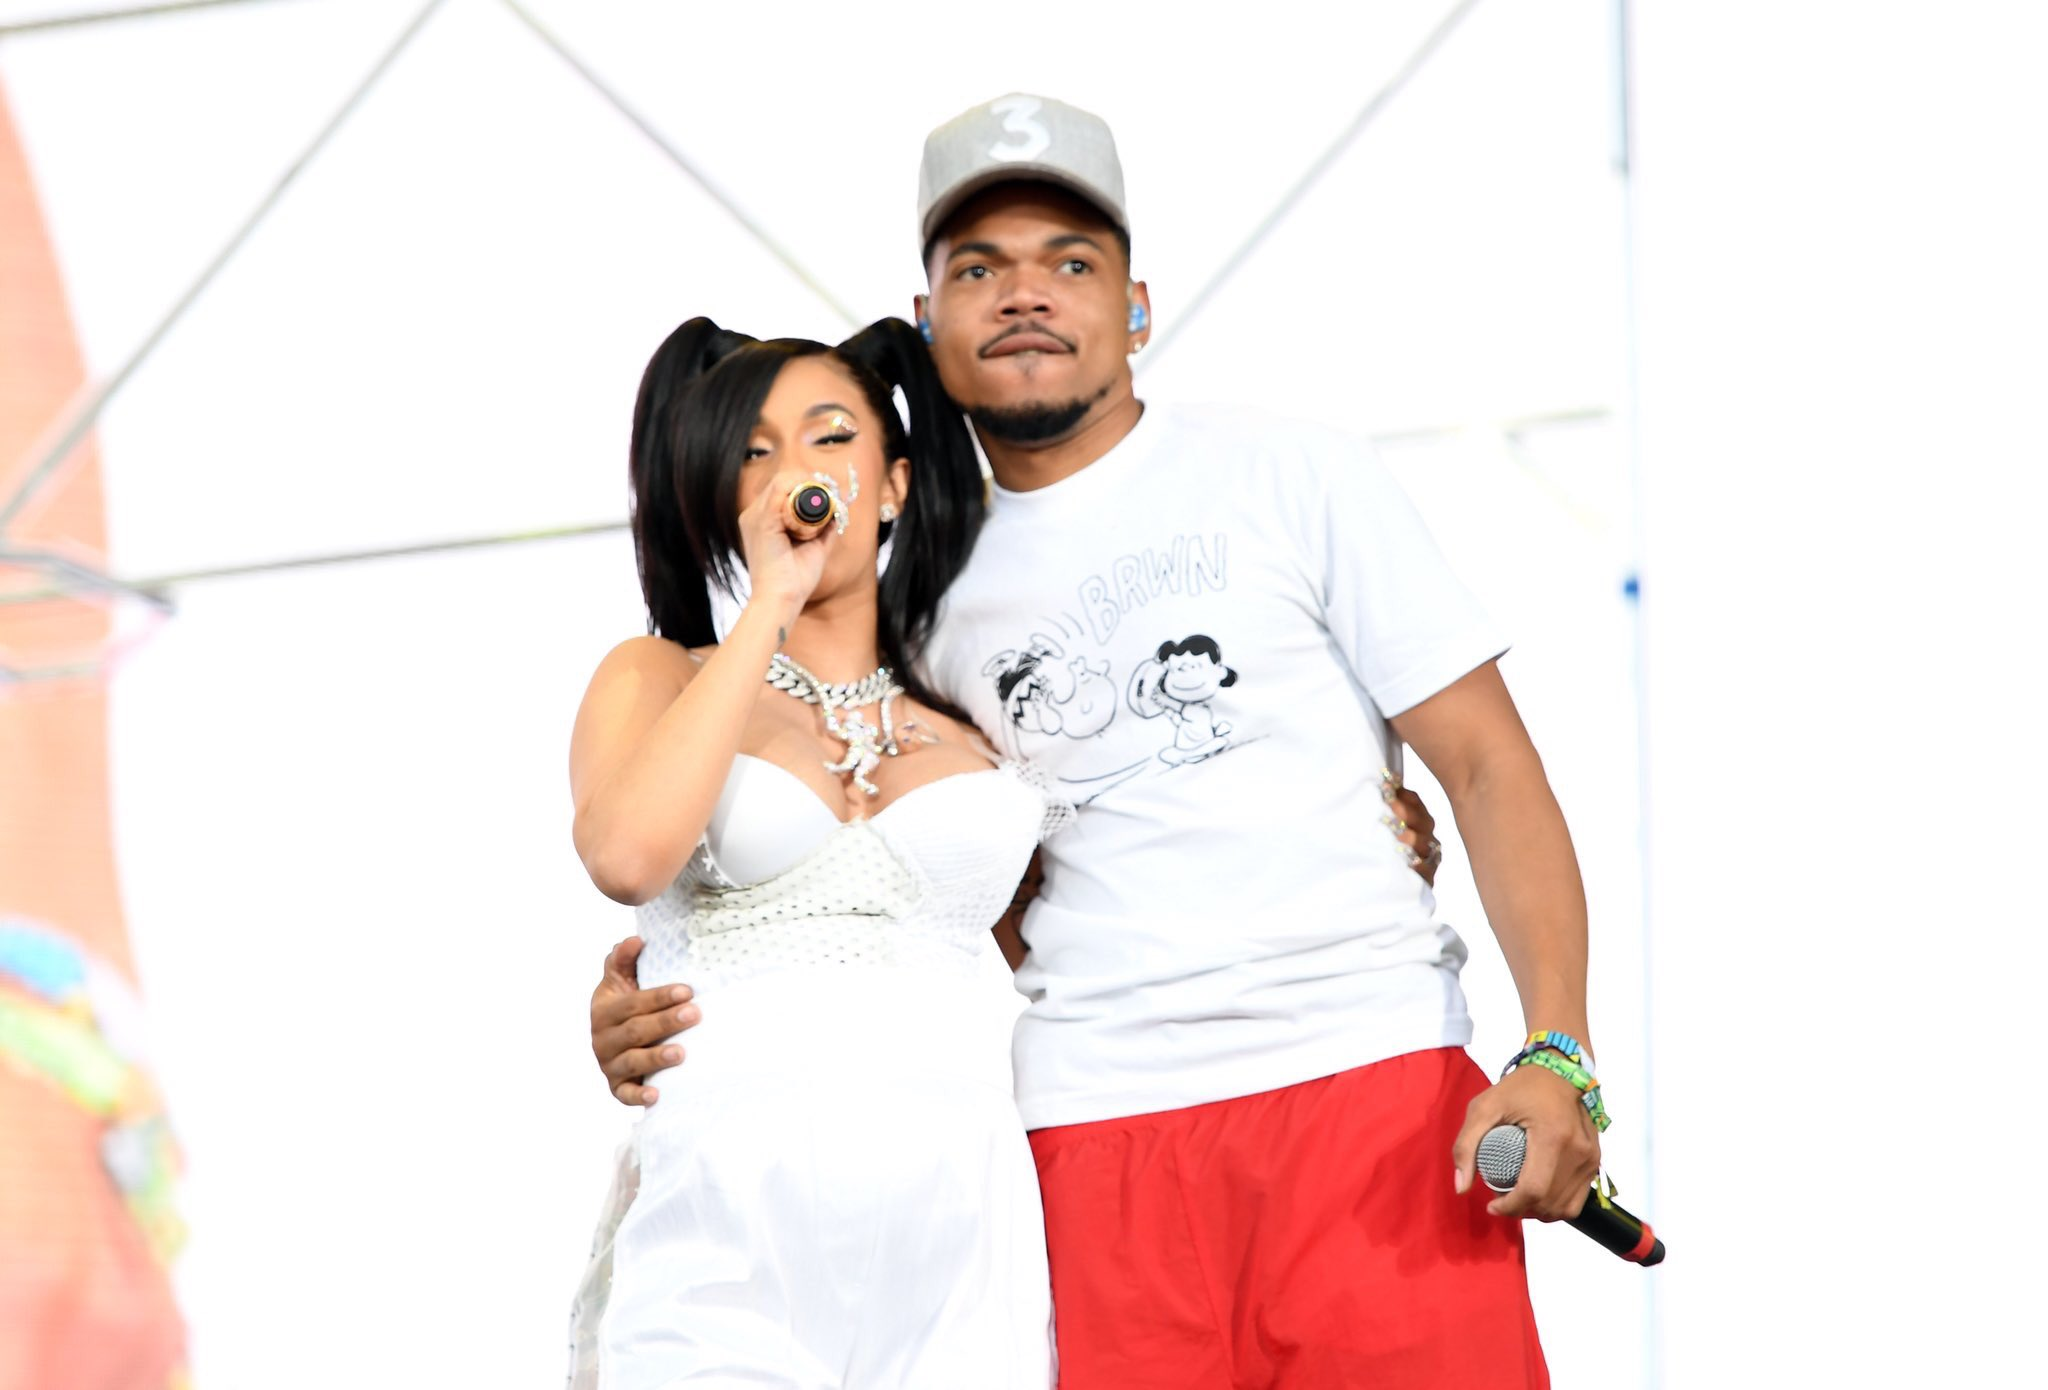 Cardi B brought out  Chance The Rapper, Kehlani, YG, Offset, GEazy and & 21 Savage during her #Coachella set. https://t.co/HFtzIfXWCf